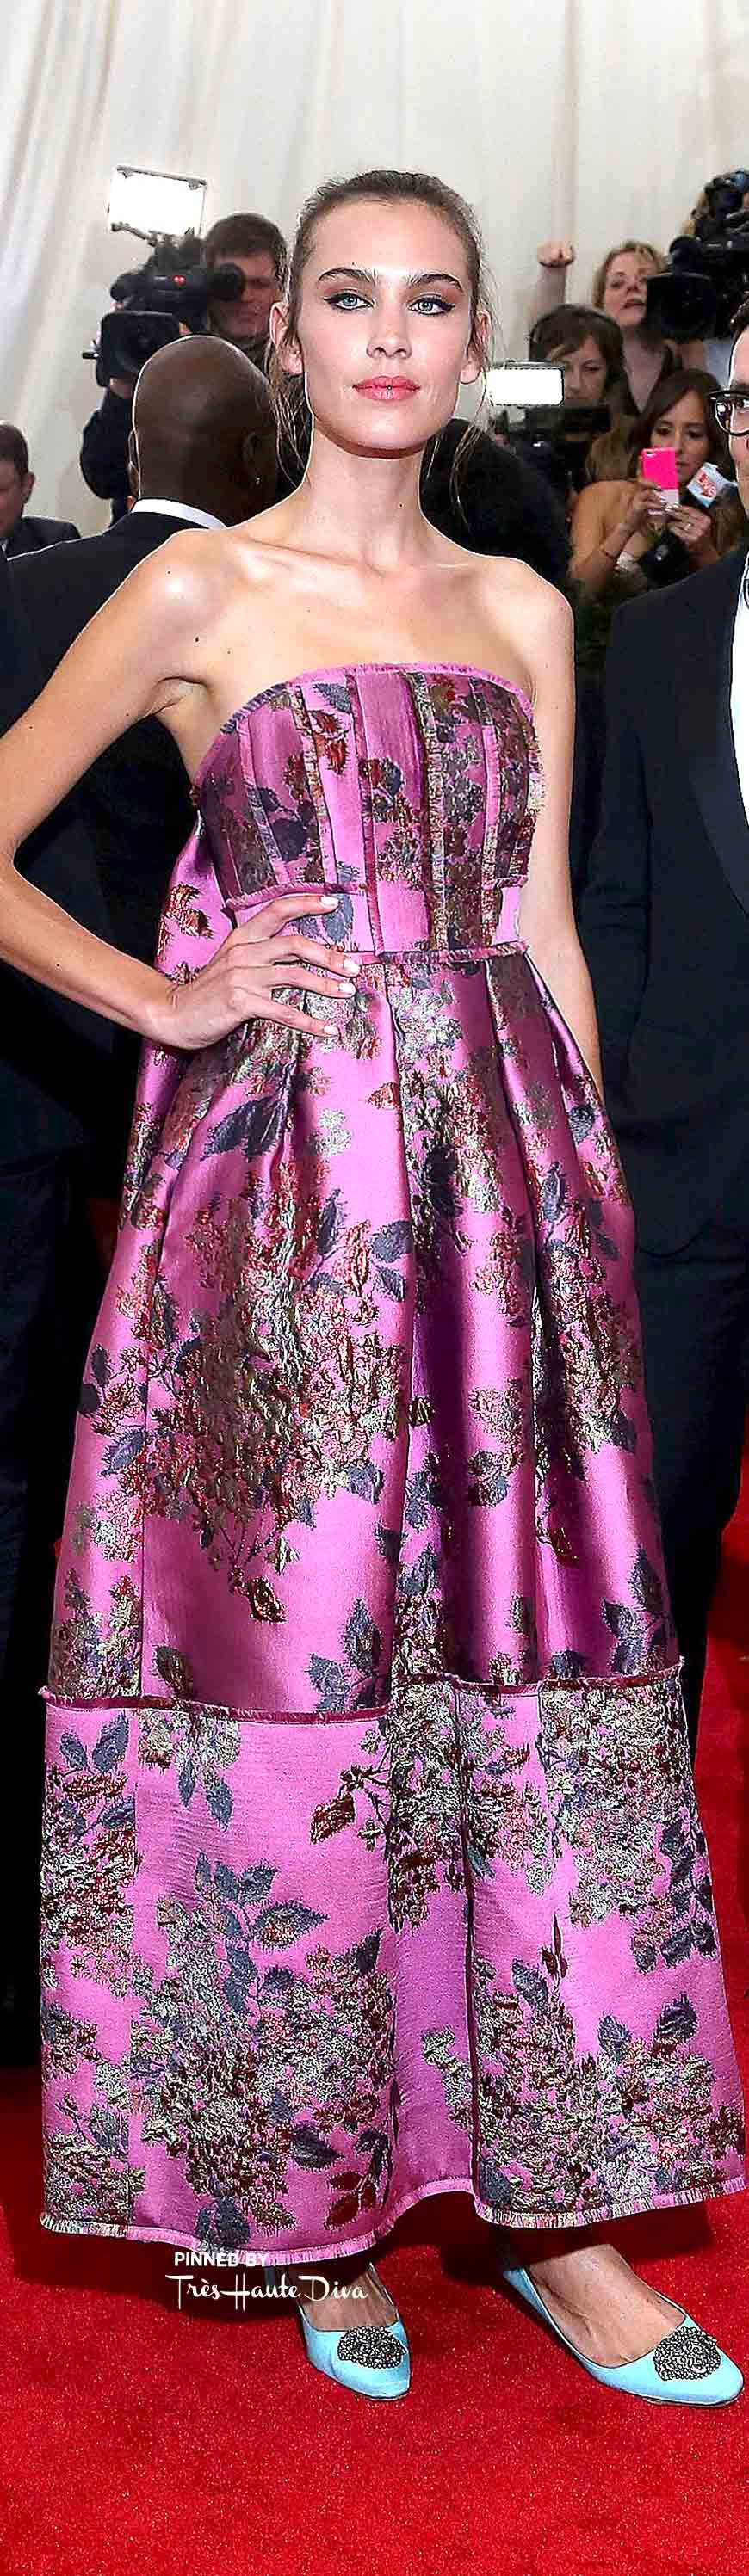 Alexa Chung in Erdem Getty Images/ Taylor Hill